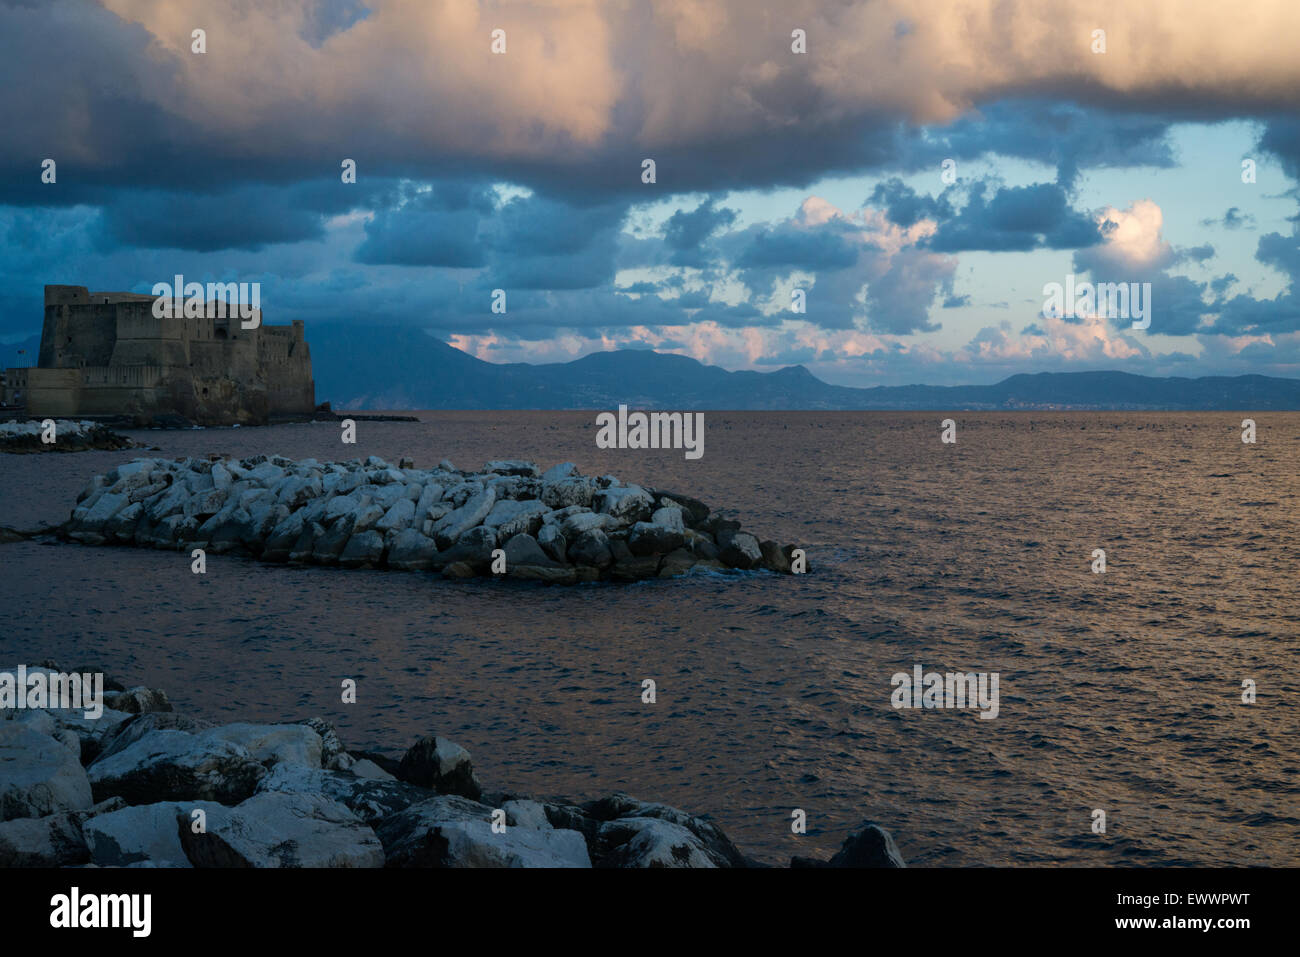 view of the gulf of naples and castel dell'ovo on a cloudy evening - Stock Image